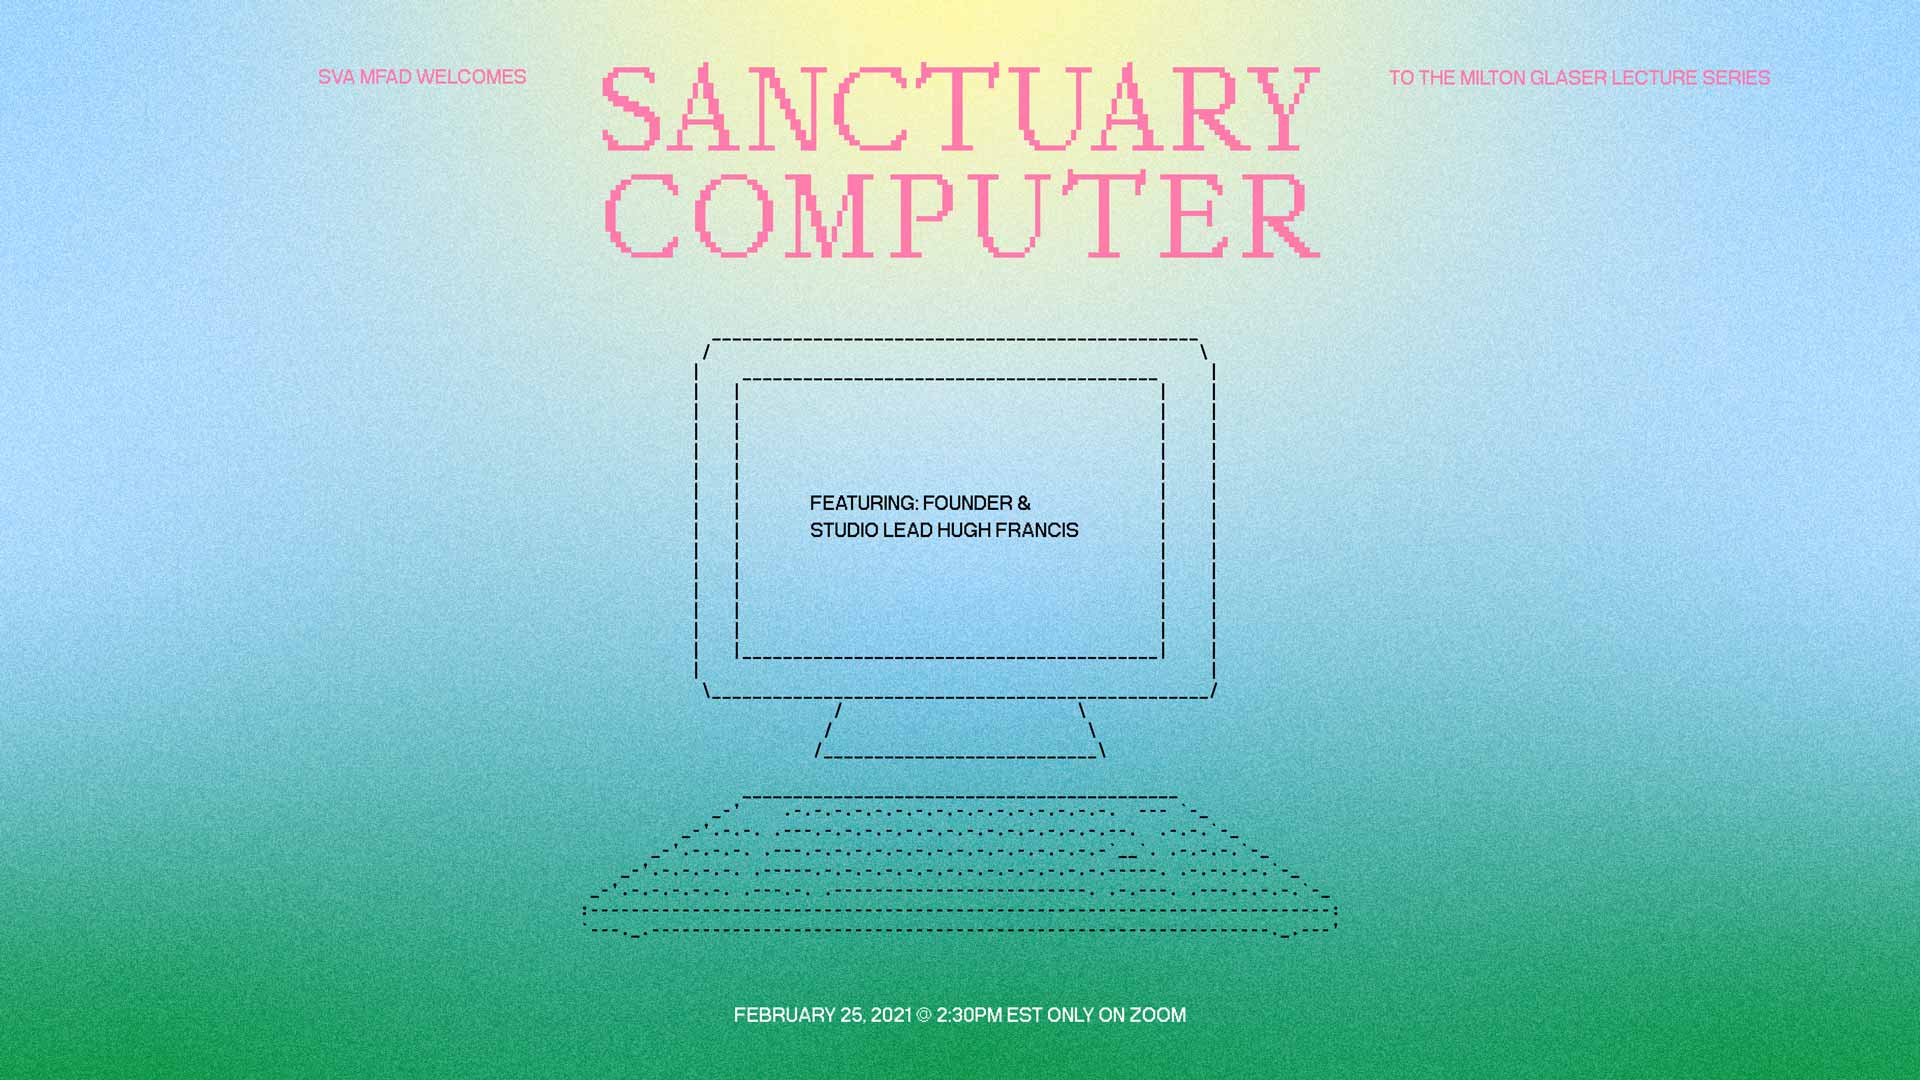 Hugh Francis poster multicolor gradient background with the words Sanctuary Computer and a illustration of a computer made of hyphens and slashes